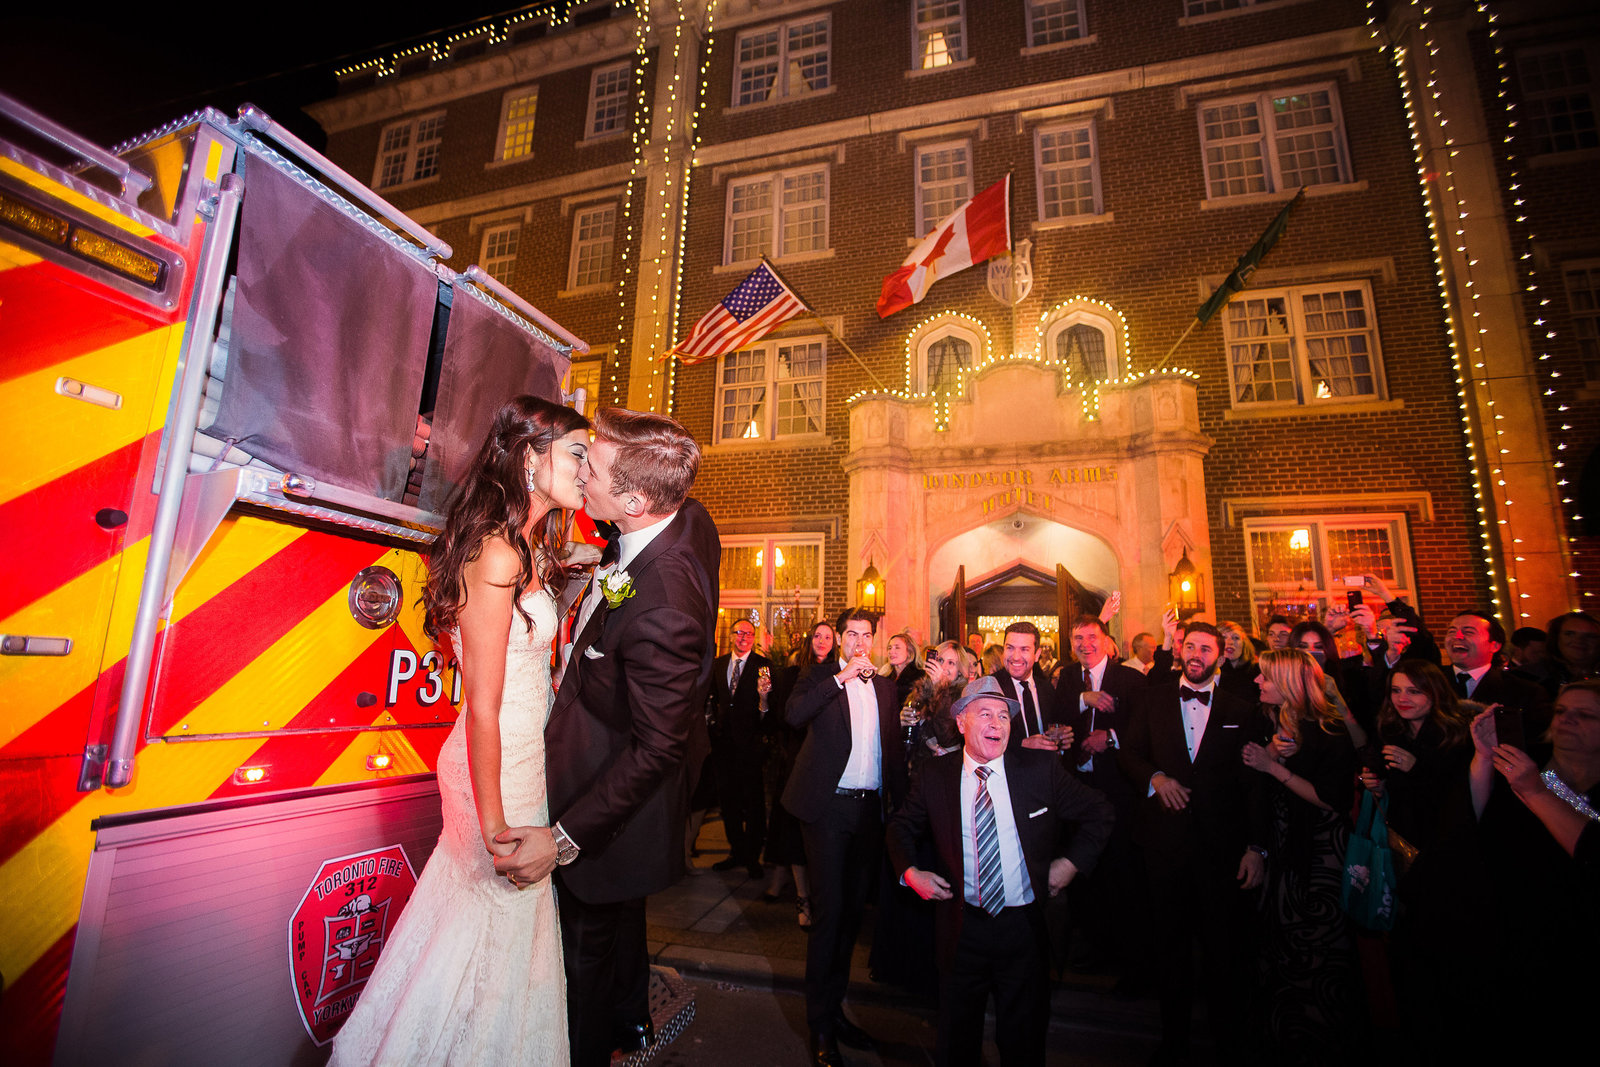 26 Windsor arms wedding photo at night candid